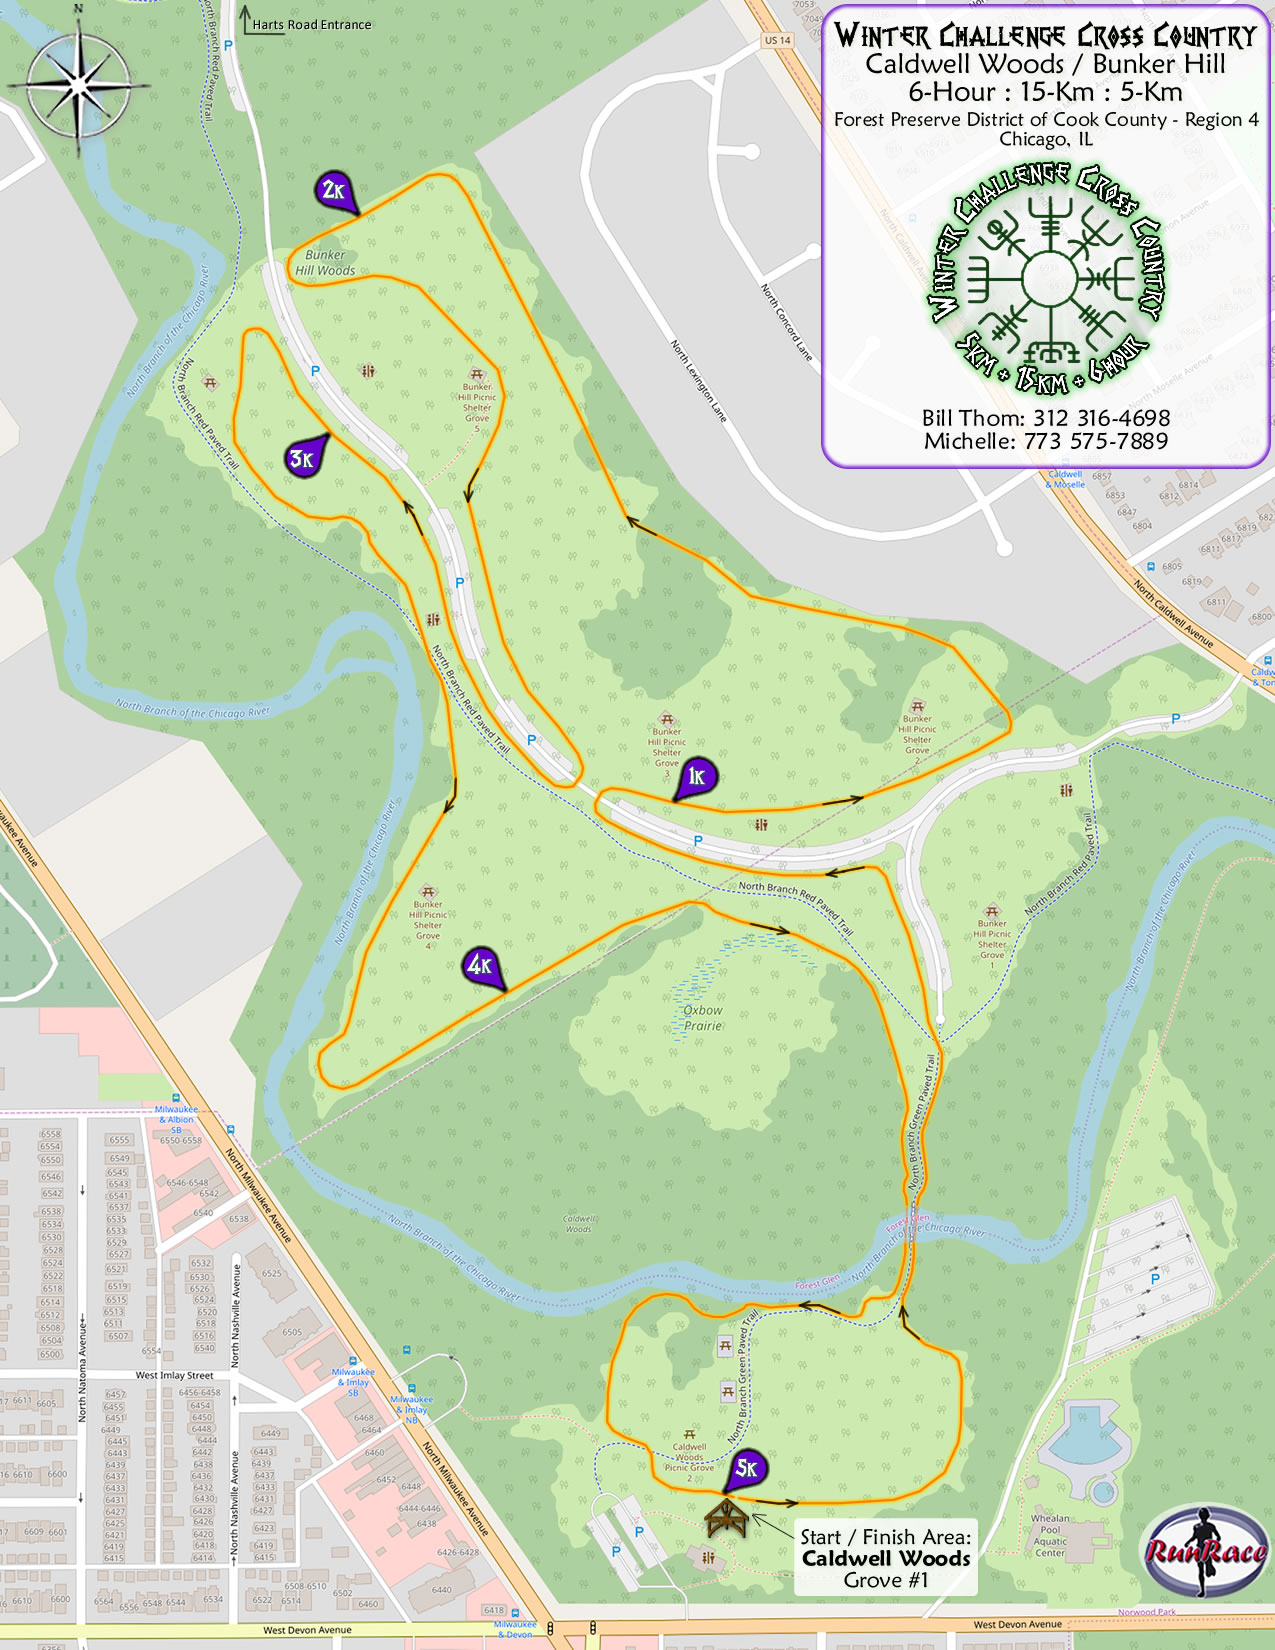 [racecourse map: Winter Challenge Cross Country]